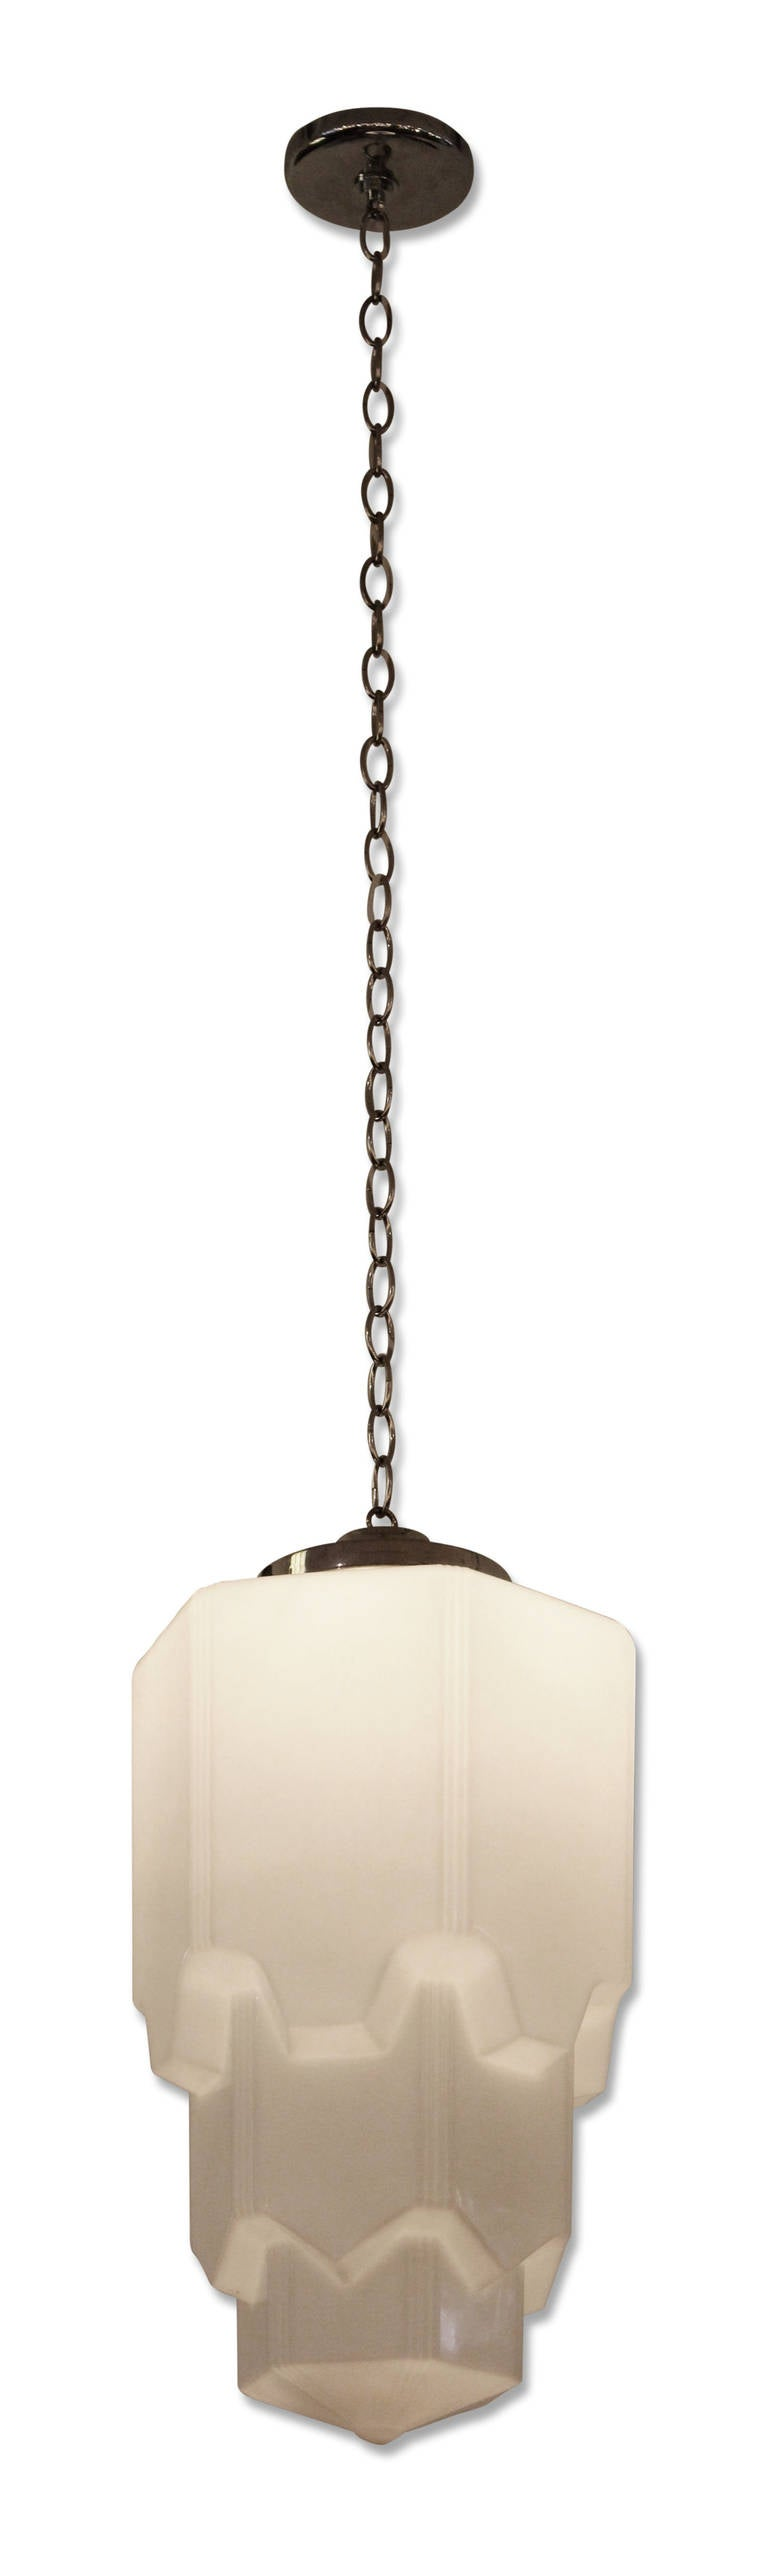 Skyscraper art deco pendant light with a stepped design comes equipped with new